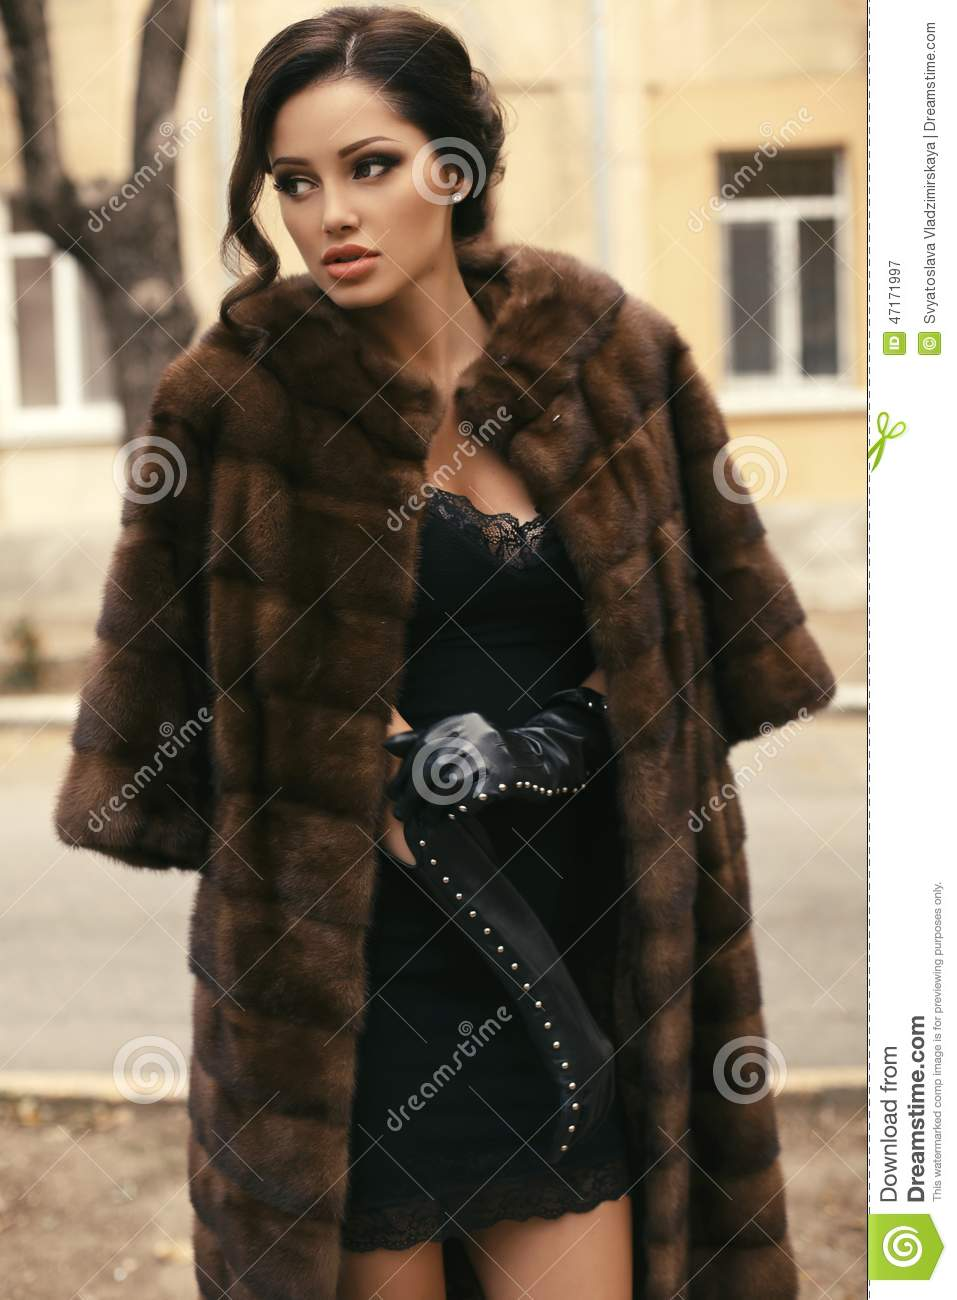 Beautiful woman with dark hair in luxurious fur coat and gloves